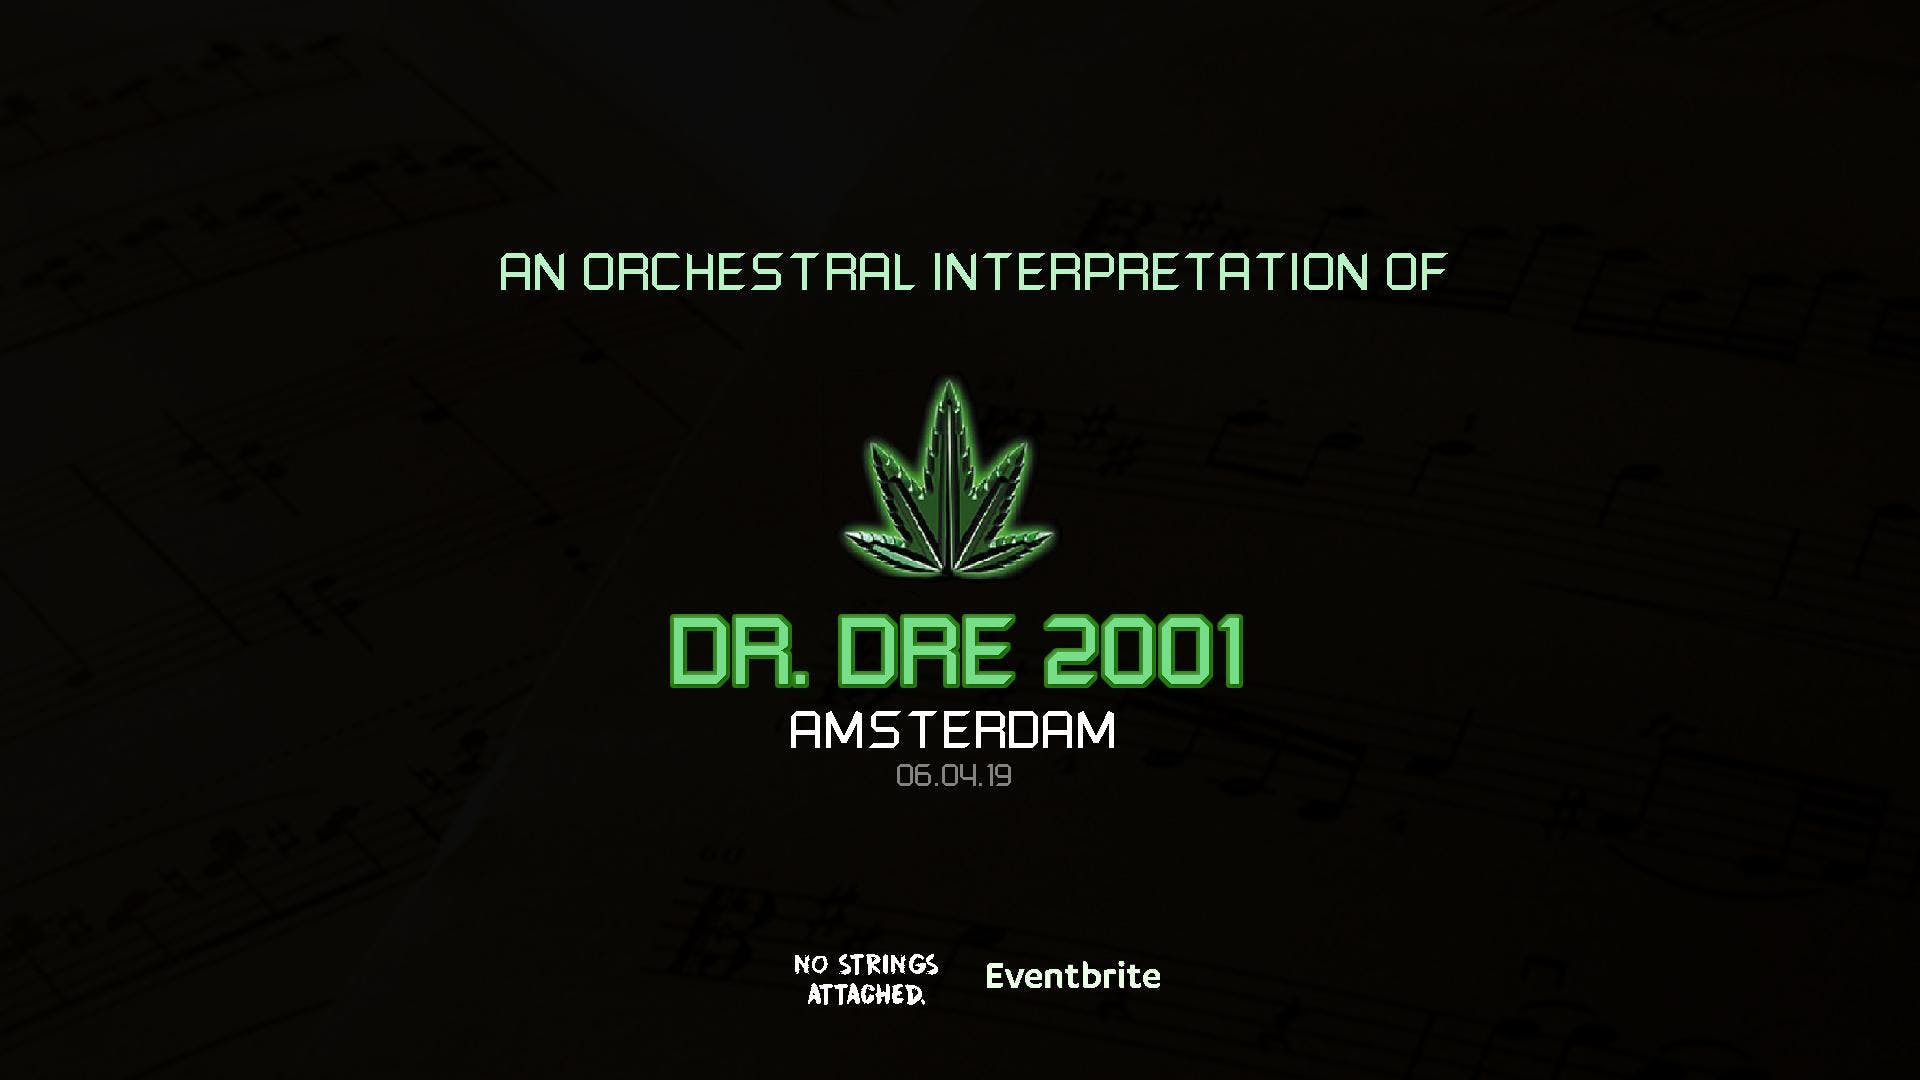 An Orchestral Rendition of Dr. Dre: 2001 - Am